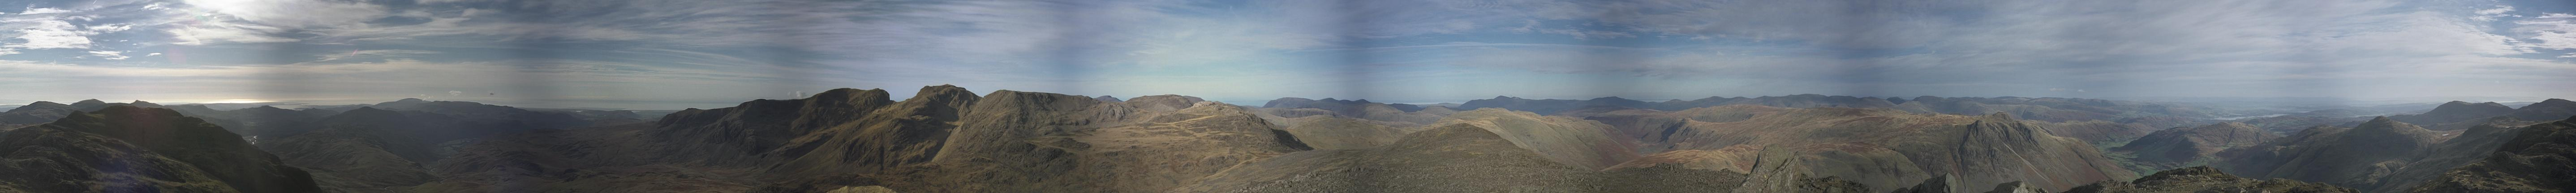 Bowfell - Complete Panorama